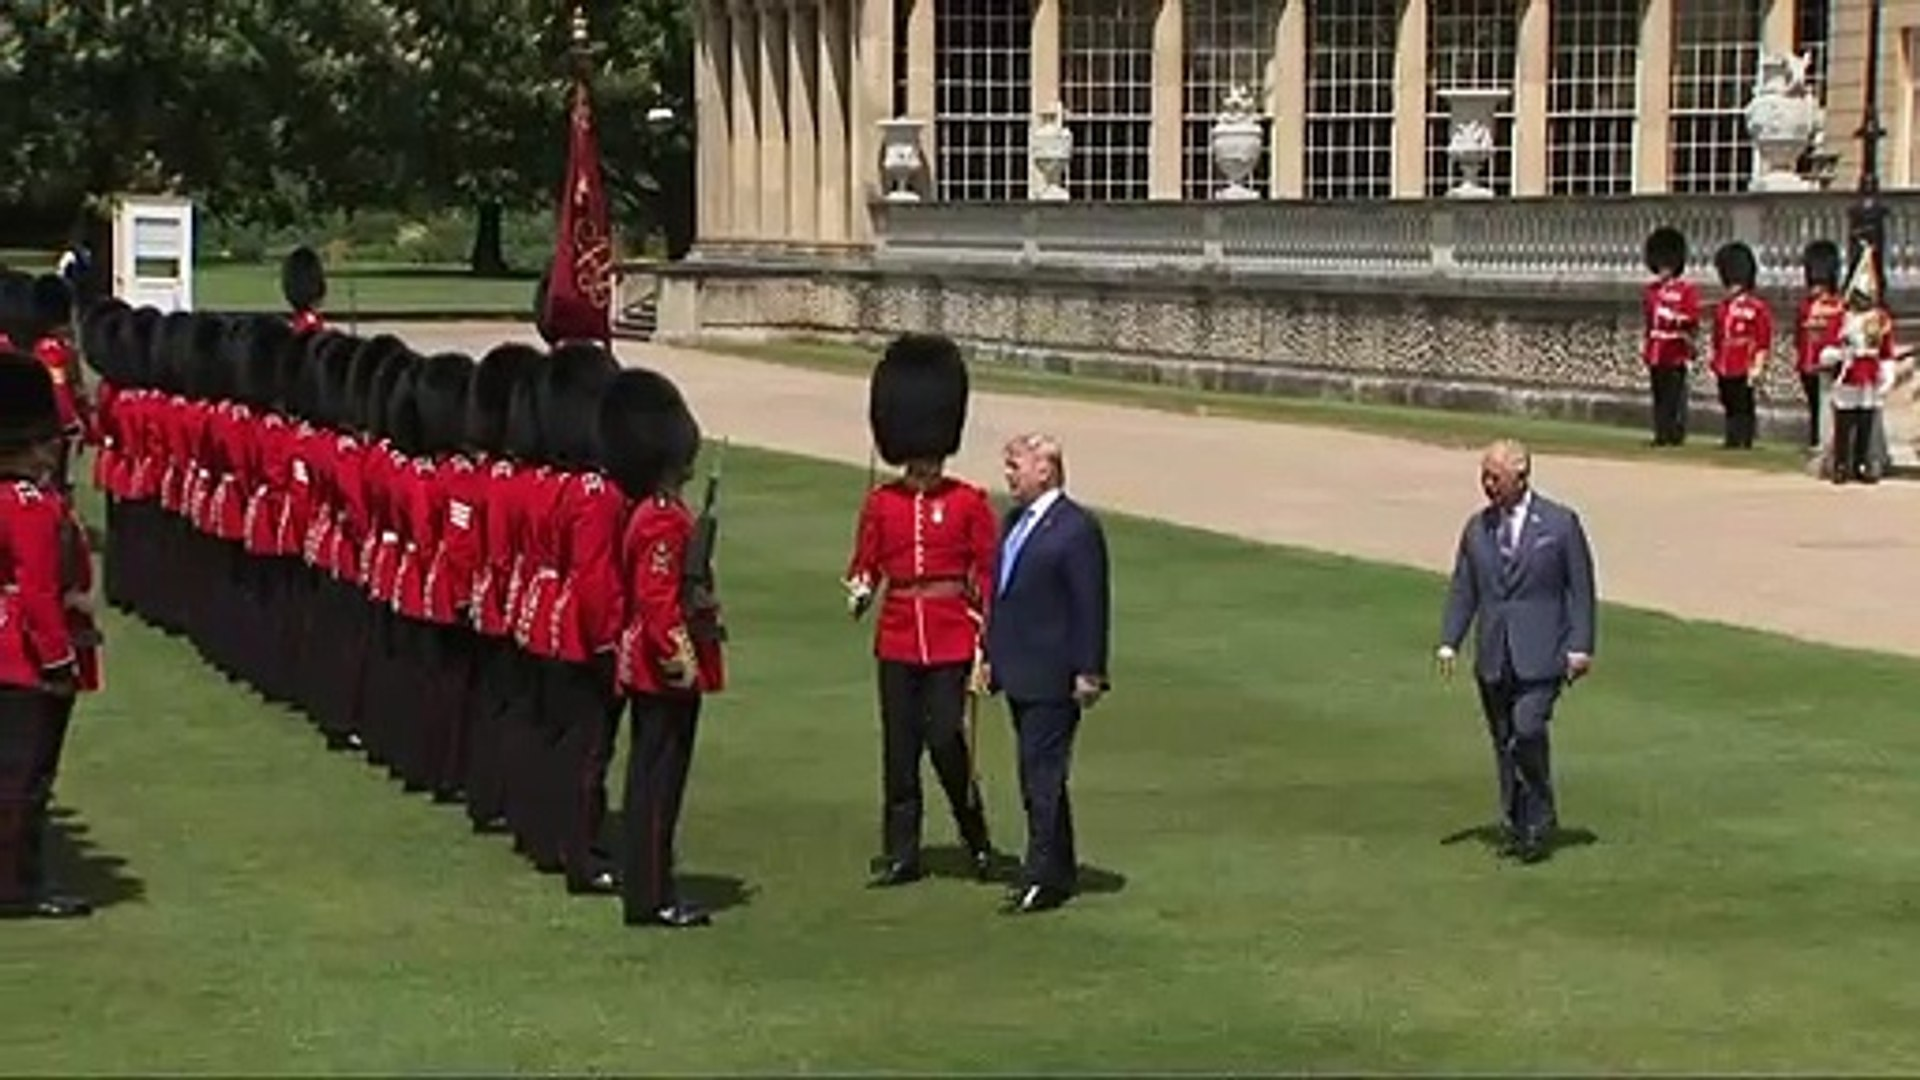 Trump inspects Guard of Honour at Buckingham Palace